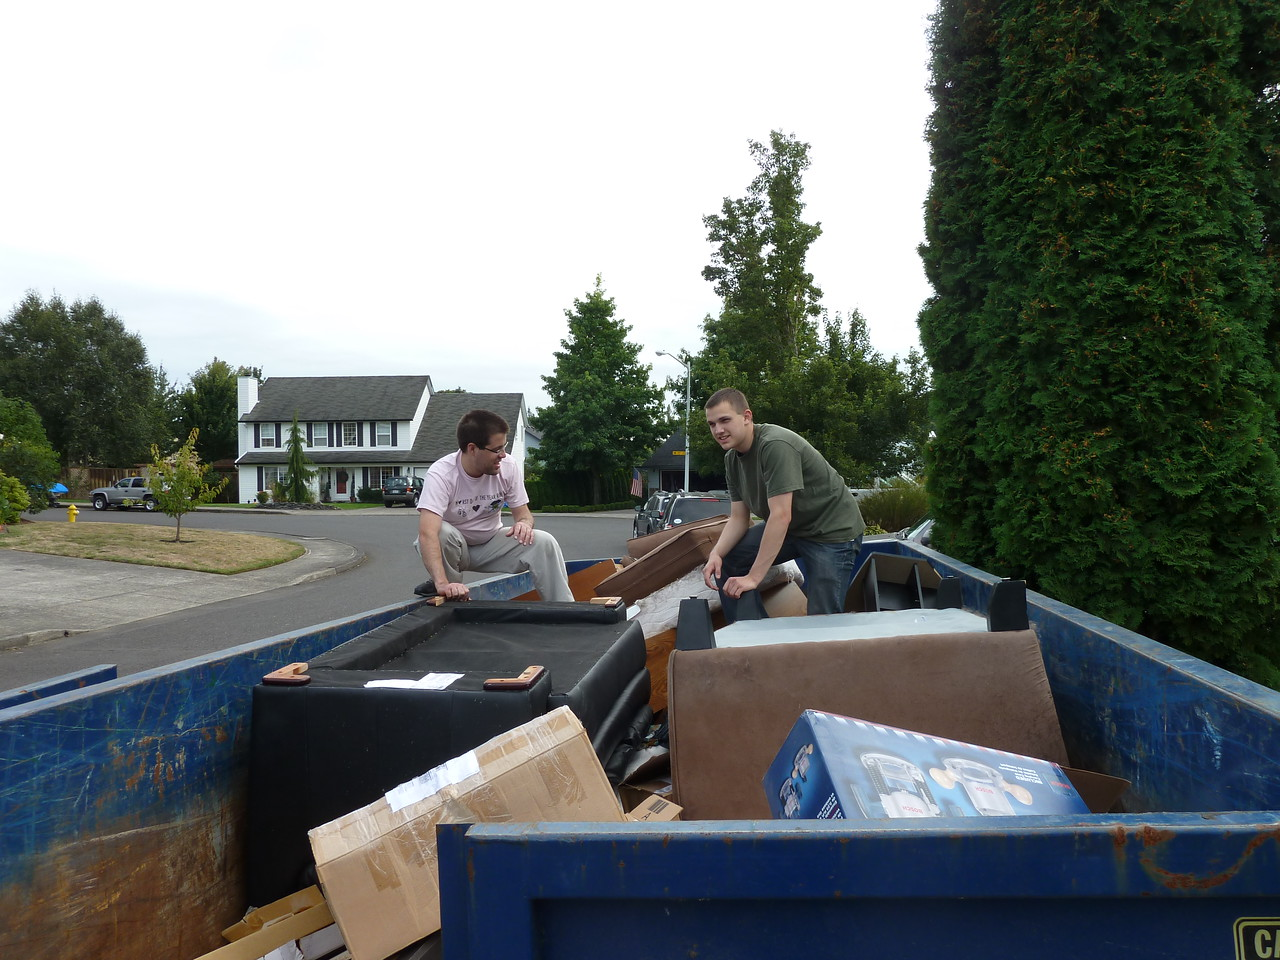 Scott and Ted rearranging the dumpster.